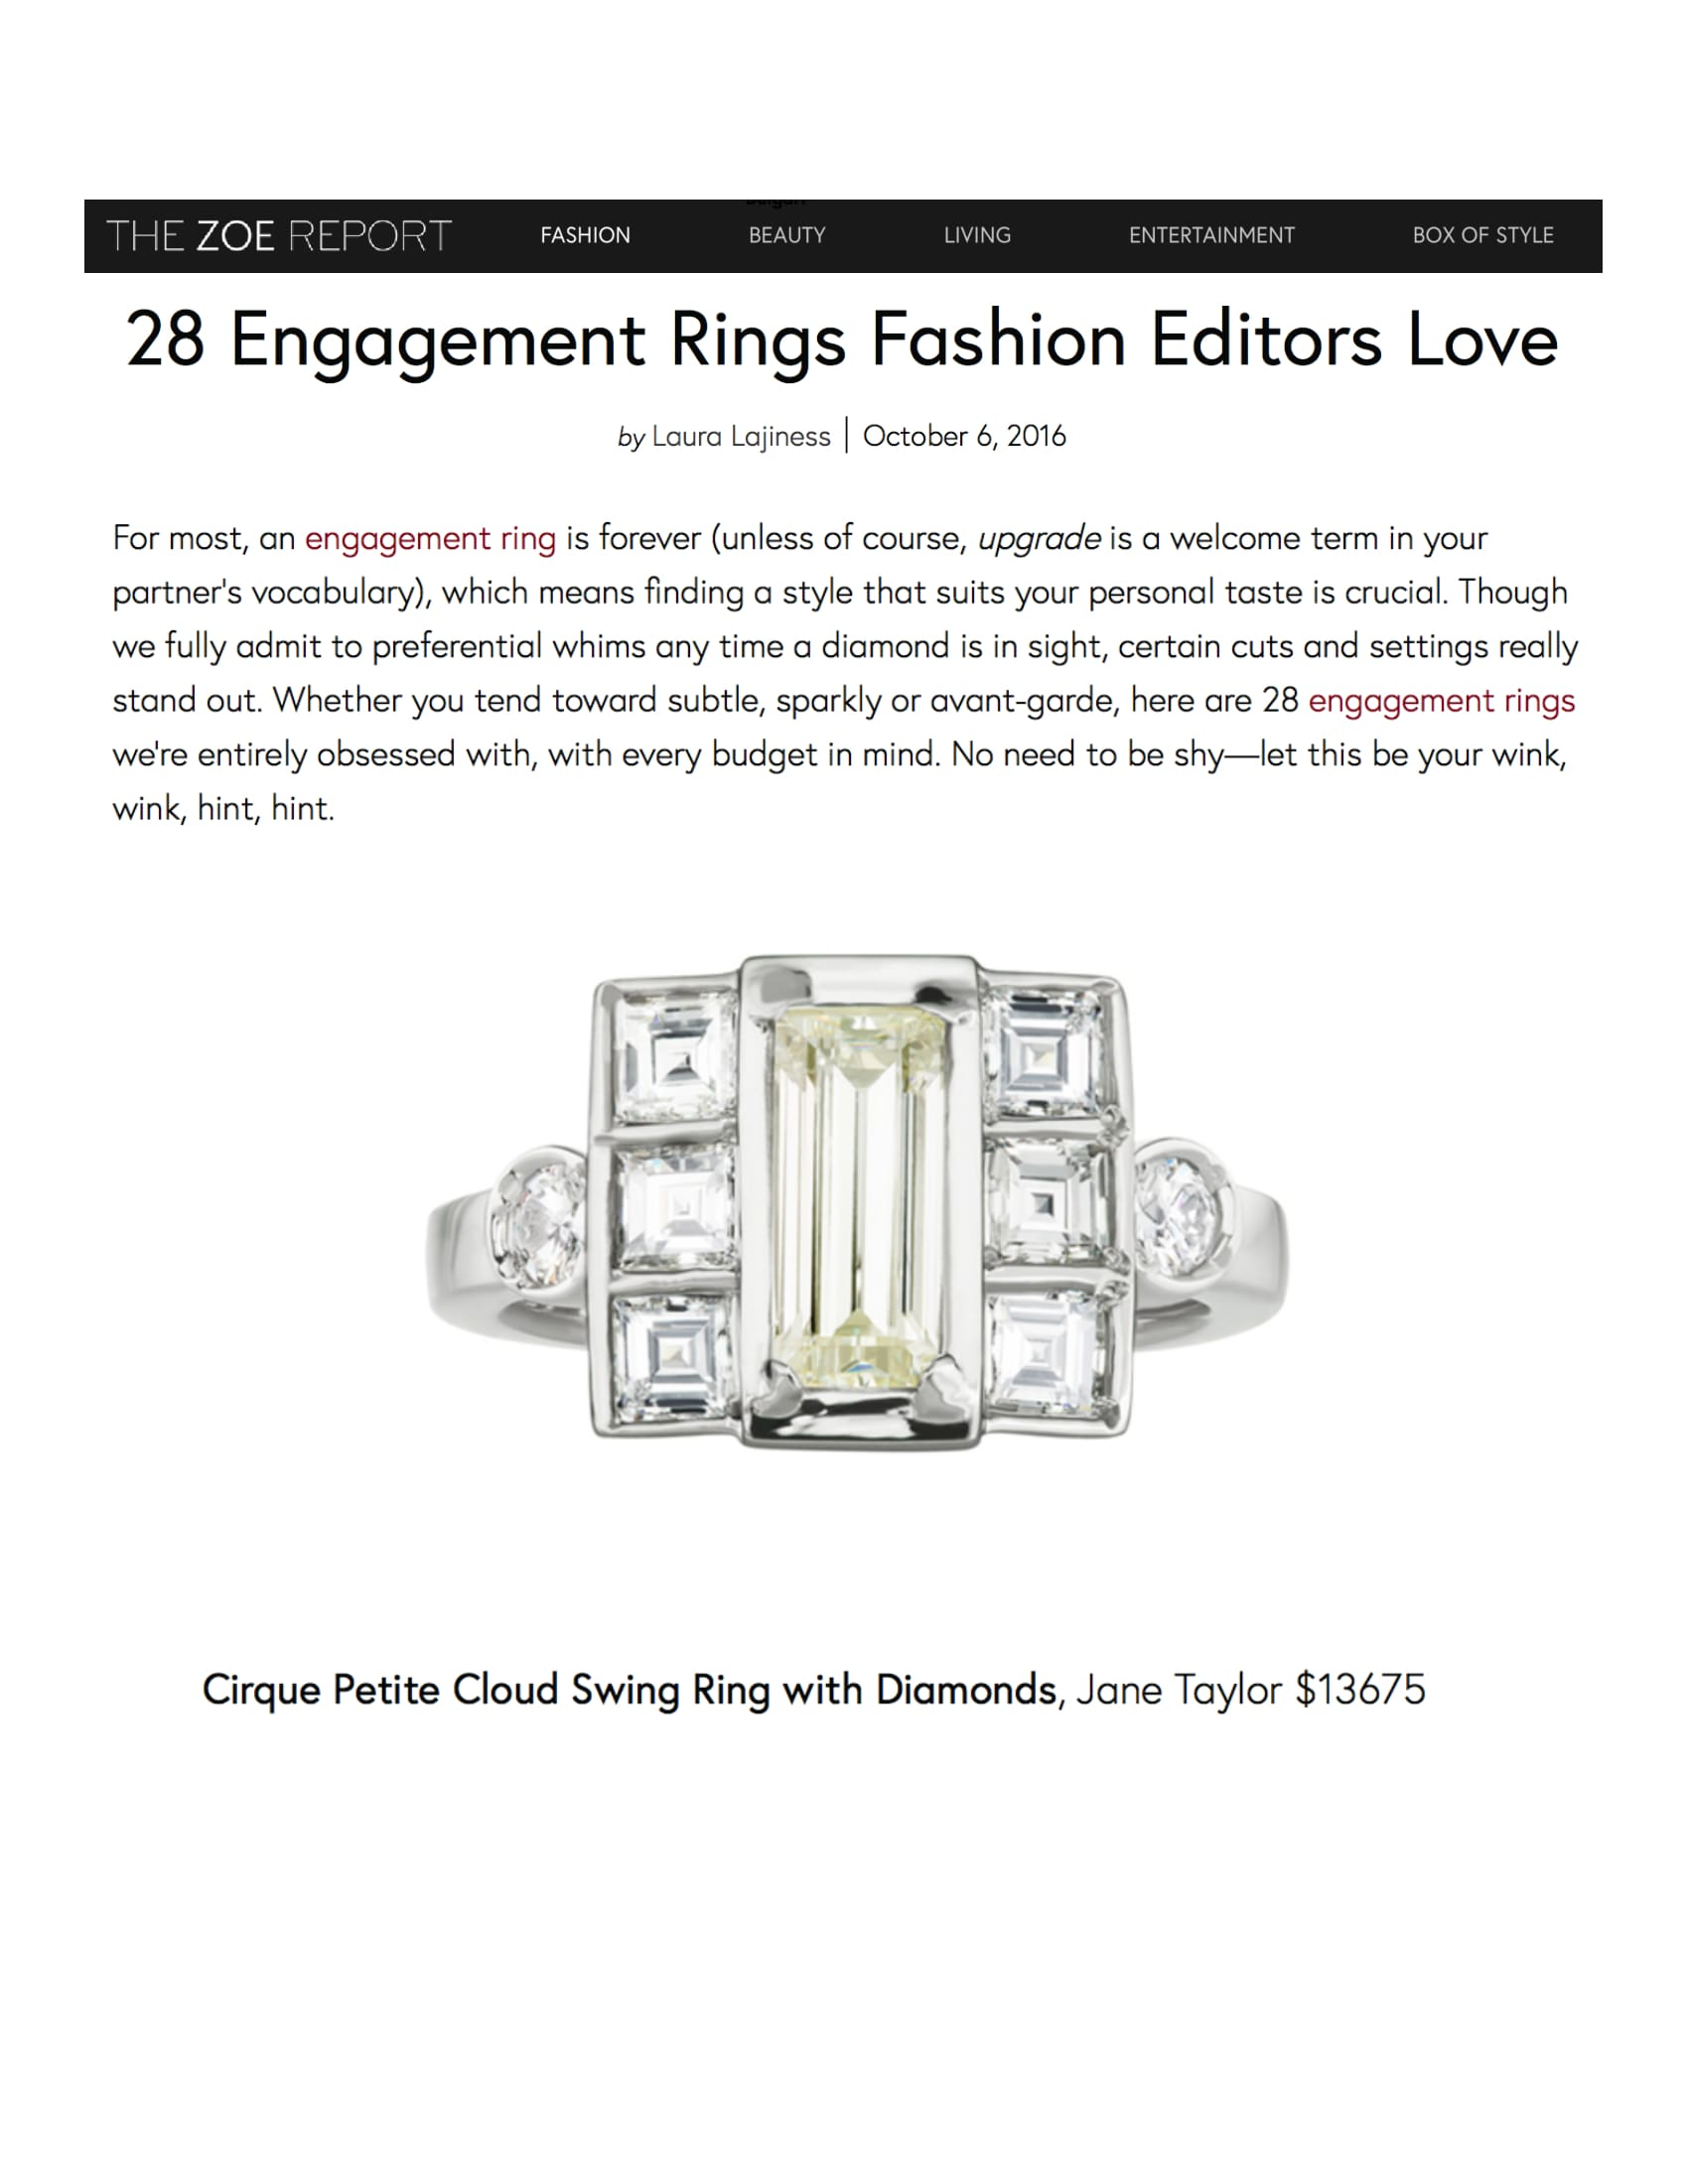 The Zoe Report - 28 Engagement Rings Fashion Editors Love - Jane Taylor Jewelry